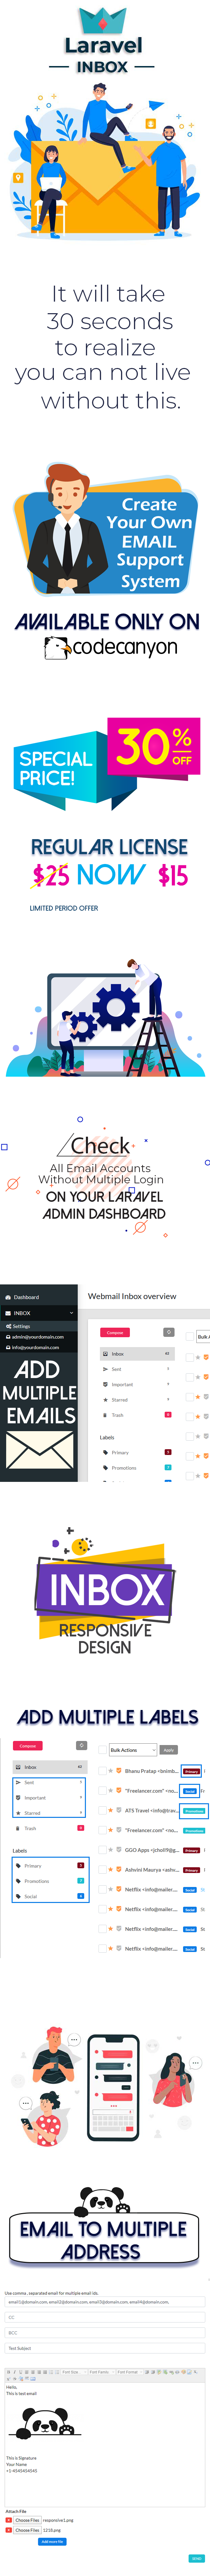 Laravel INBOX - 1